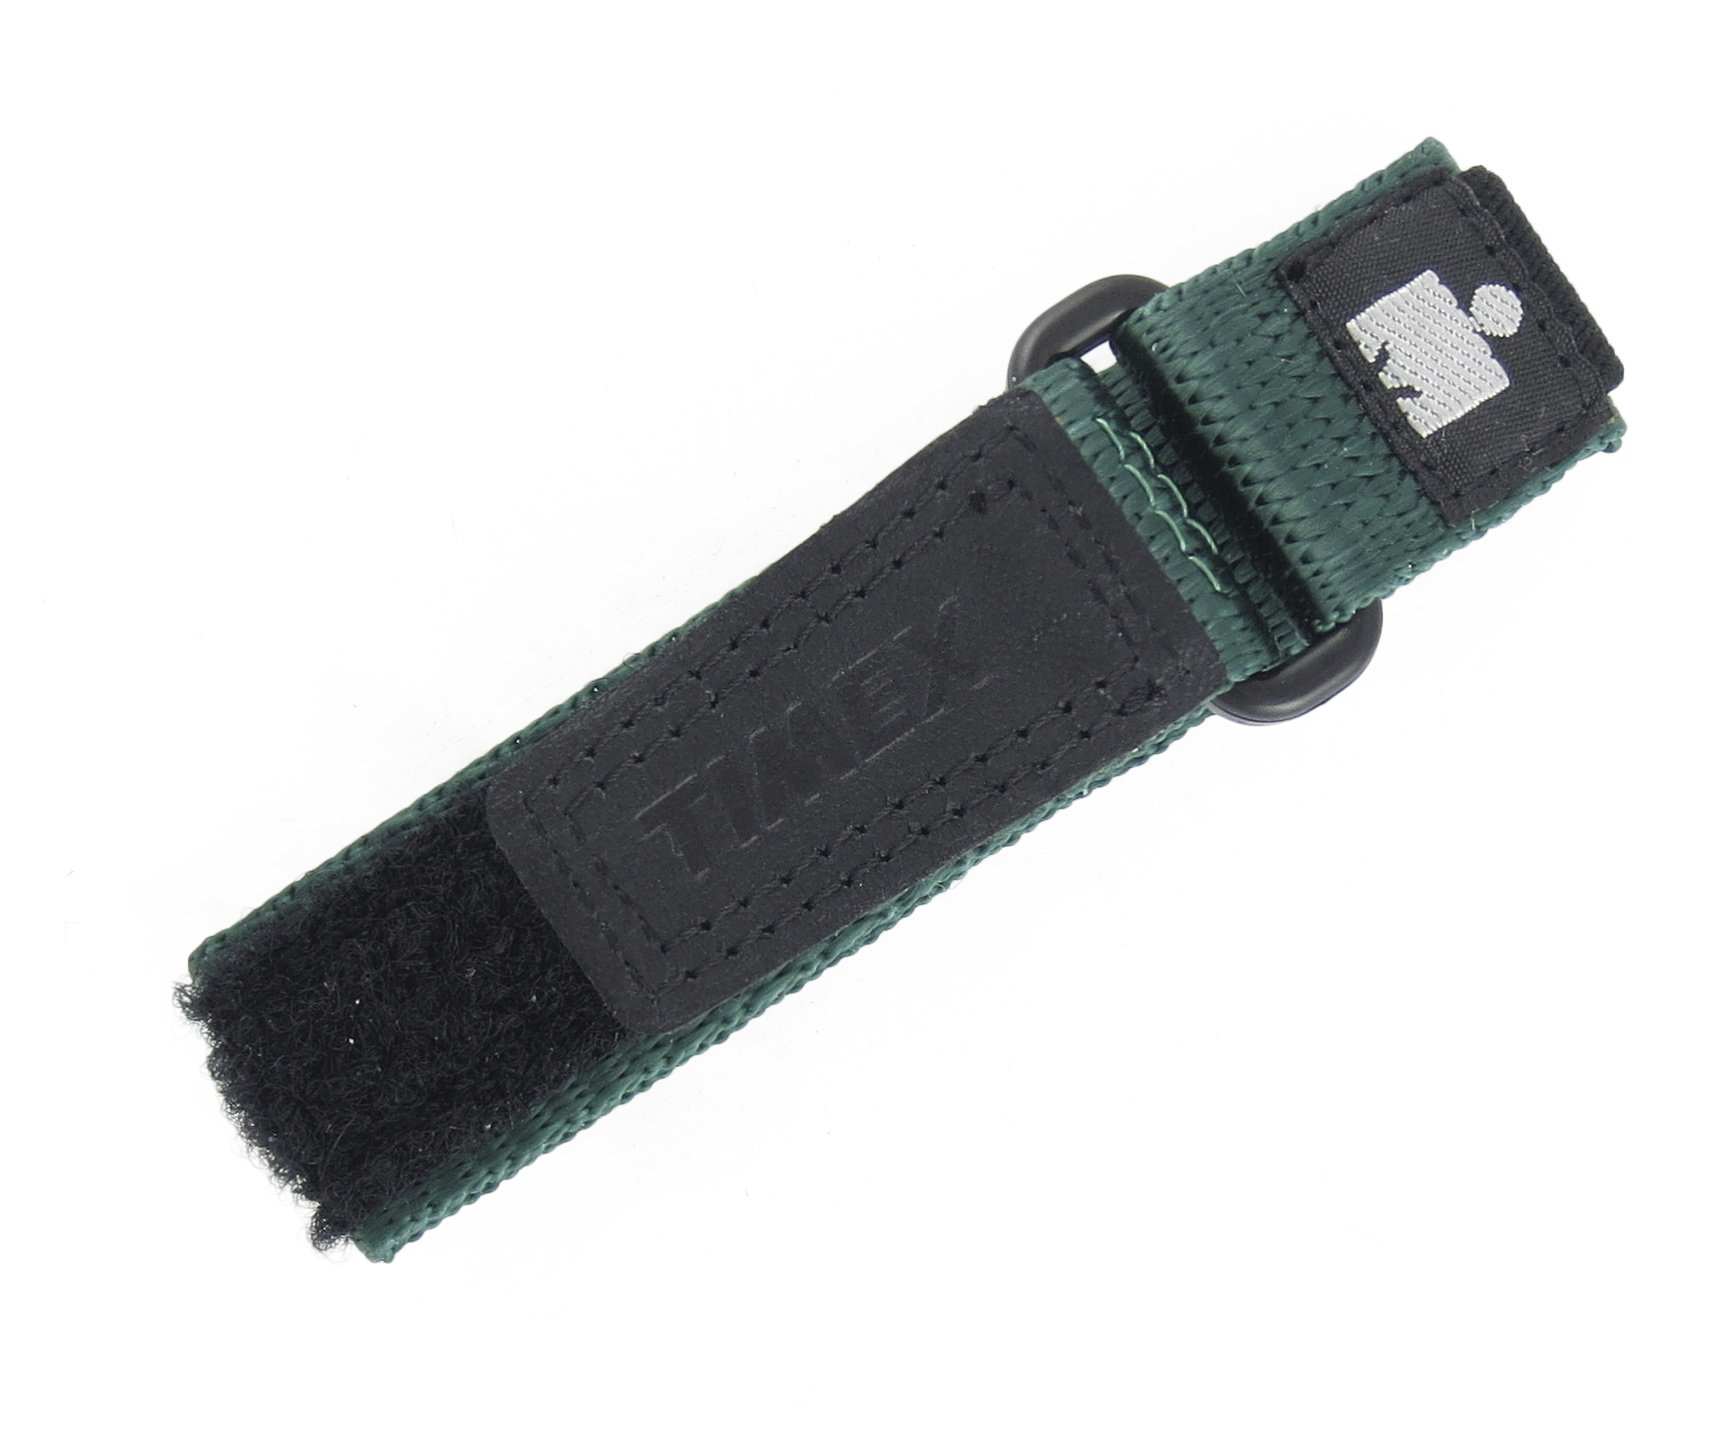 TIMEX Womens 12-16MM Black Green Hook & Loop Nylon Ironman Expedition Fast WRAP Sport Watch Band Strap